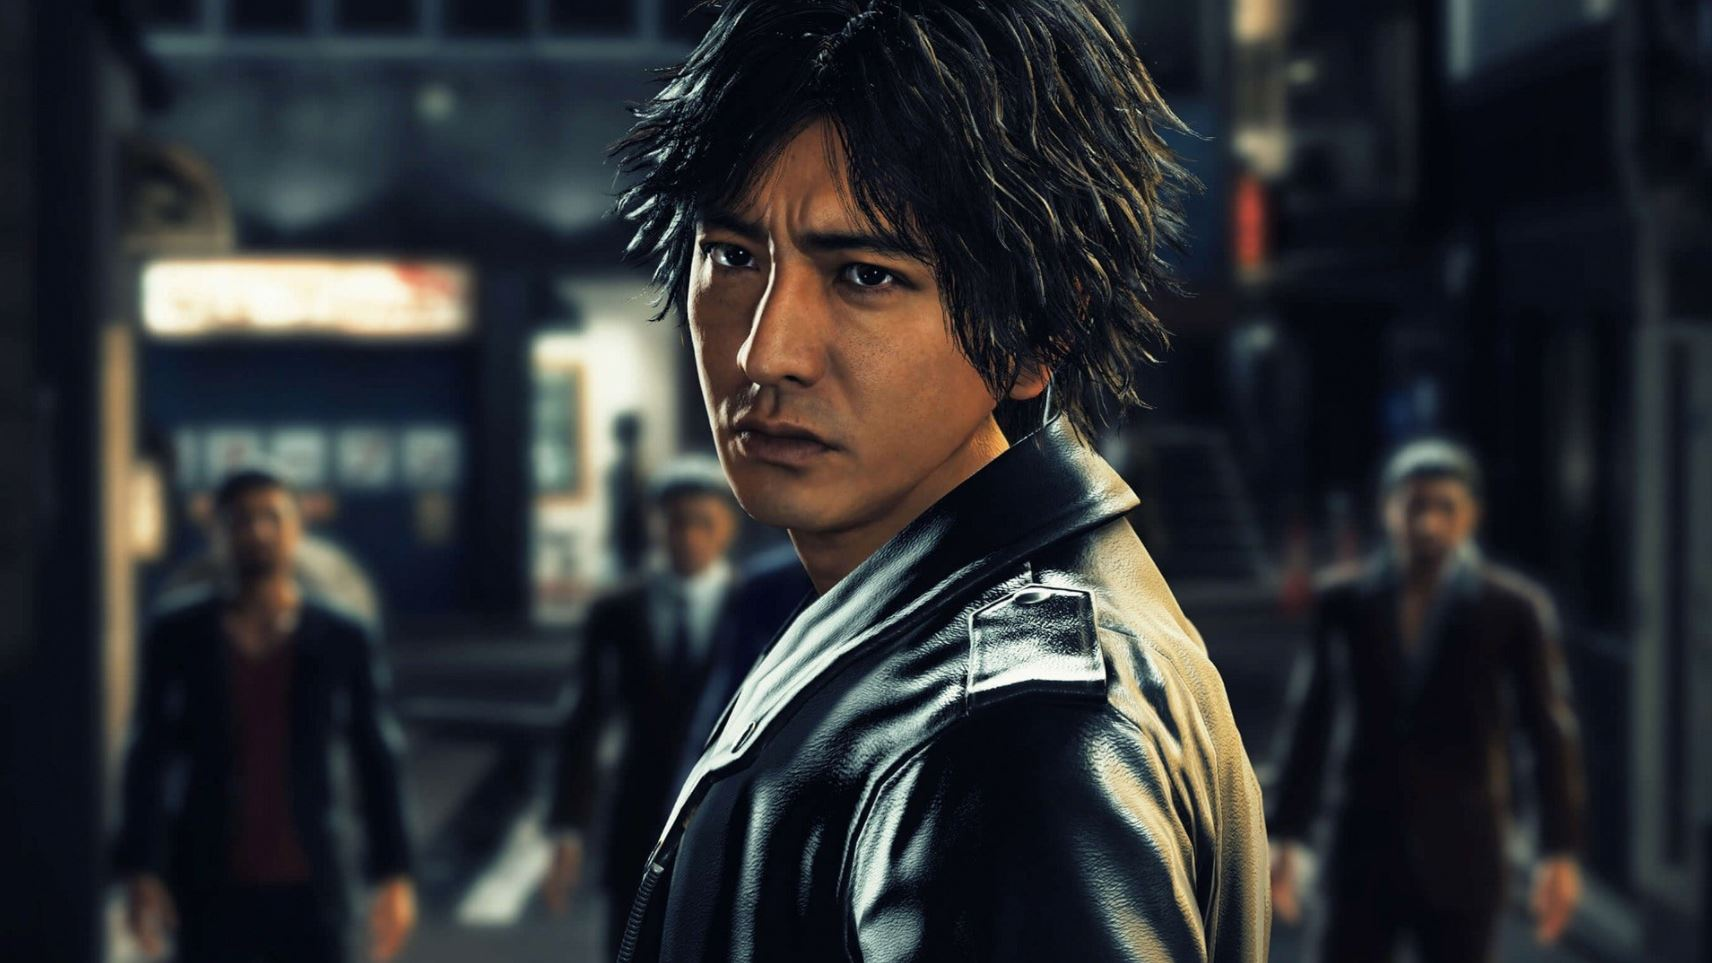 lost-judgment-leaked-on-the-playstation-store-likely-to-be-officially-announced-tomorrow